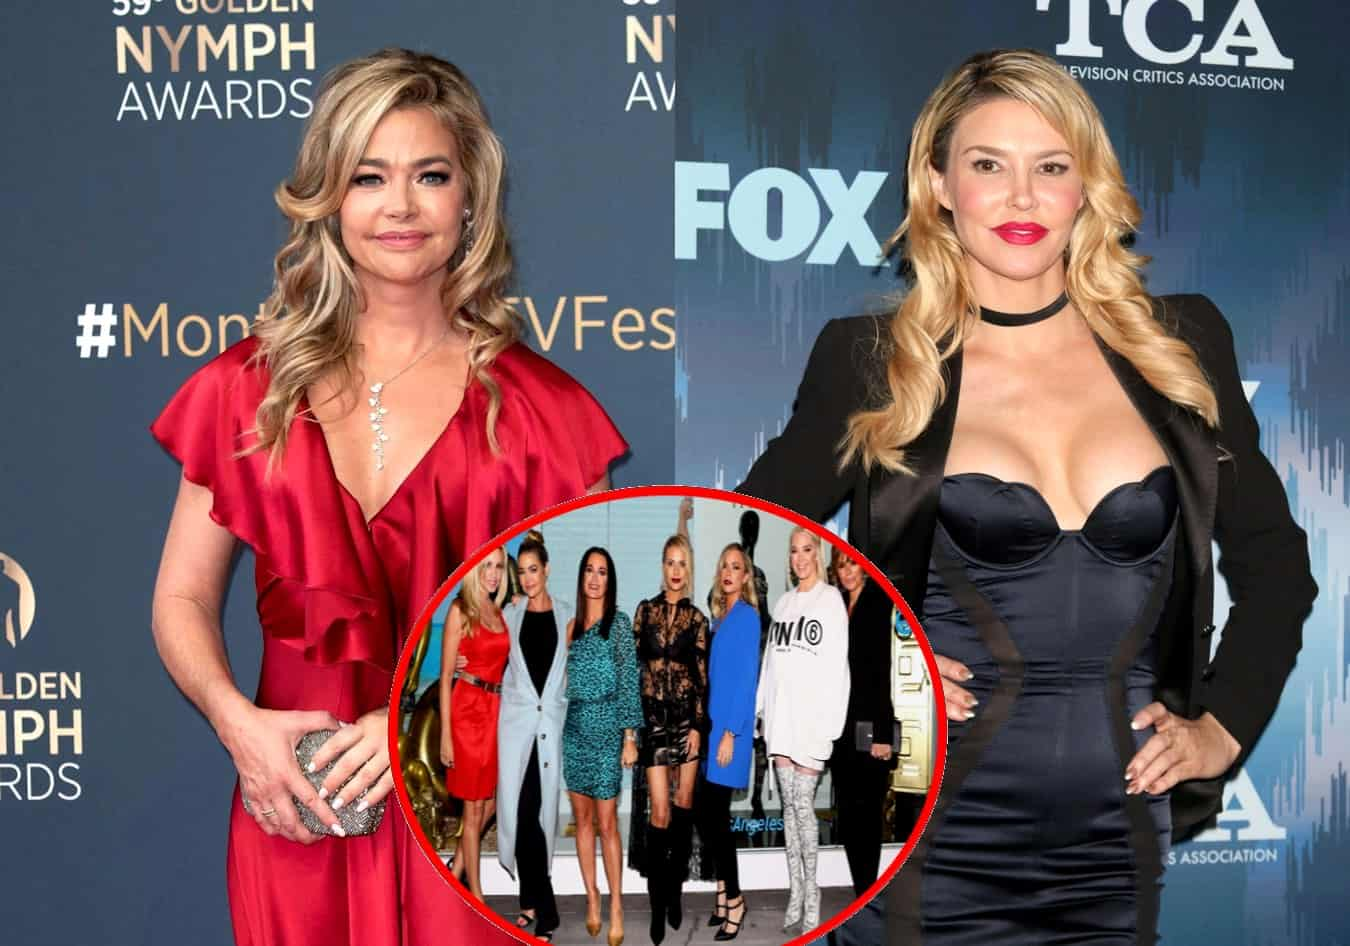 Denise Richards Accused of Having Affair With Brandi Glanville for Months by RHOBH Costars, Denise Denies it Plus Find Out Why Brandi is Upset as Camille Reacts